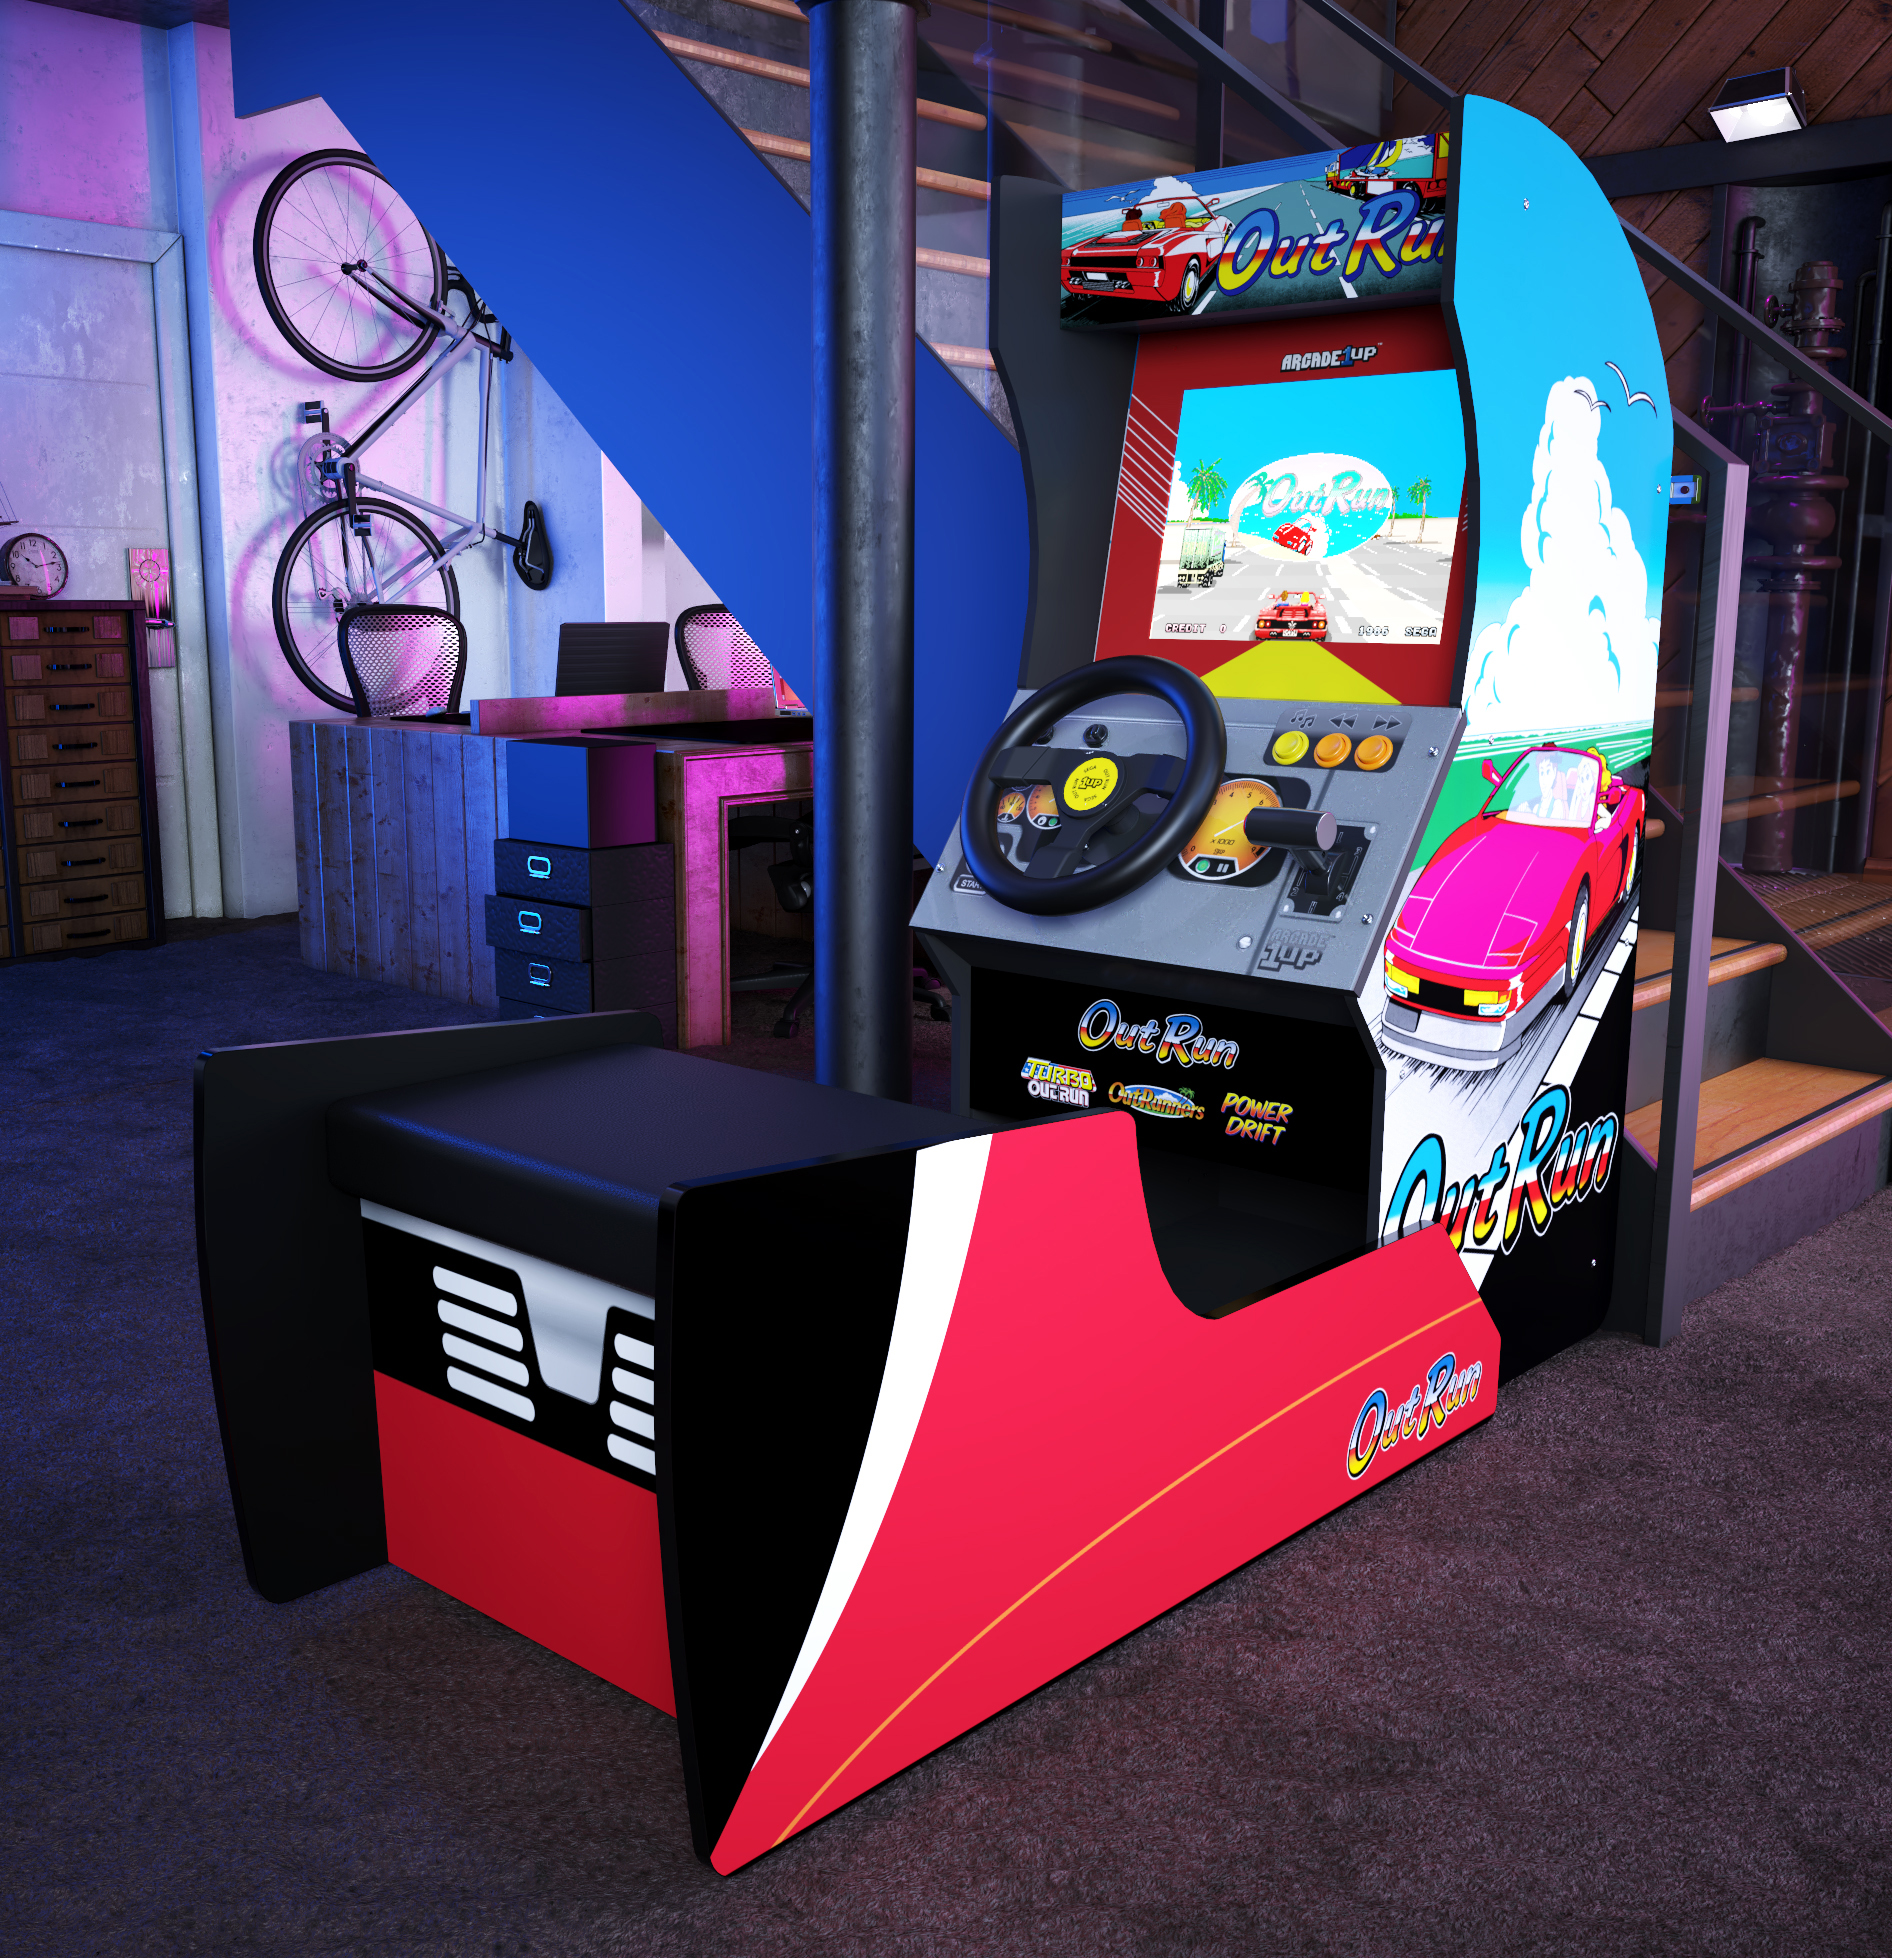 This OutRun Arcade1Up cabinet makes me think I need to get a bigger apartment screenshot